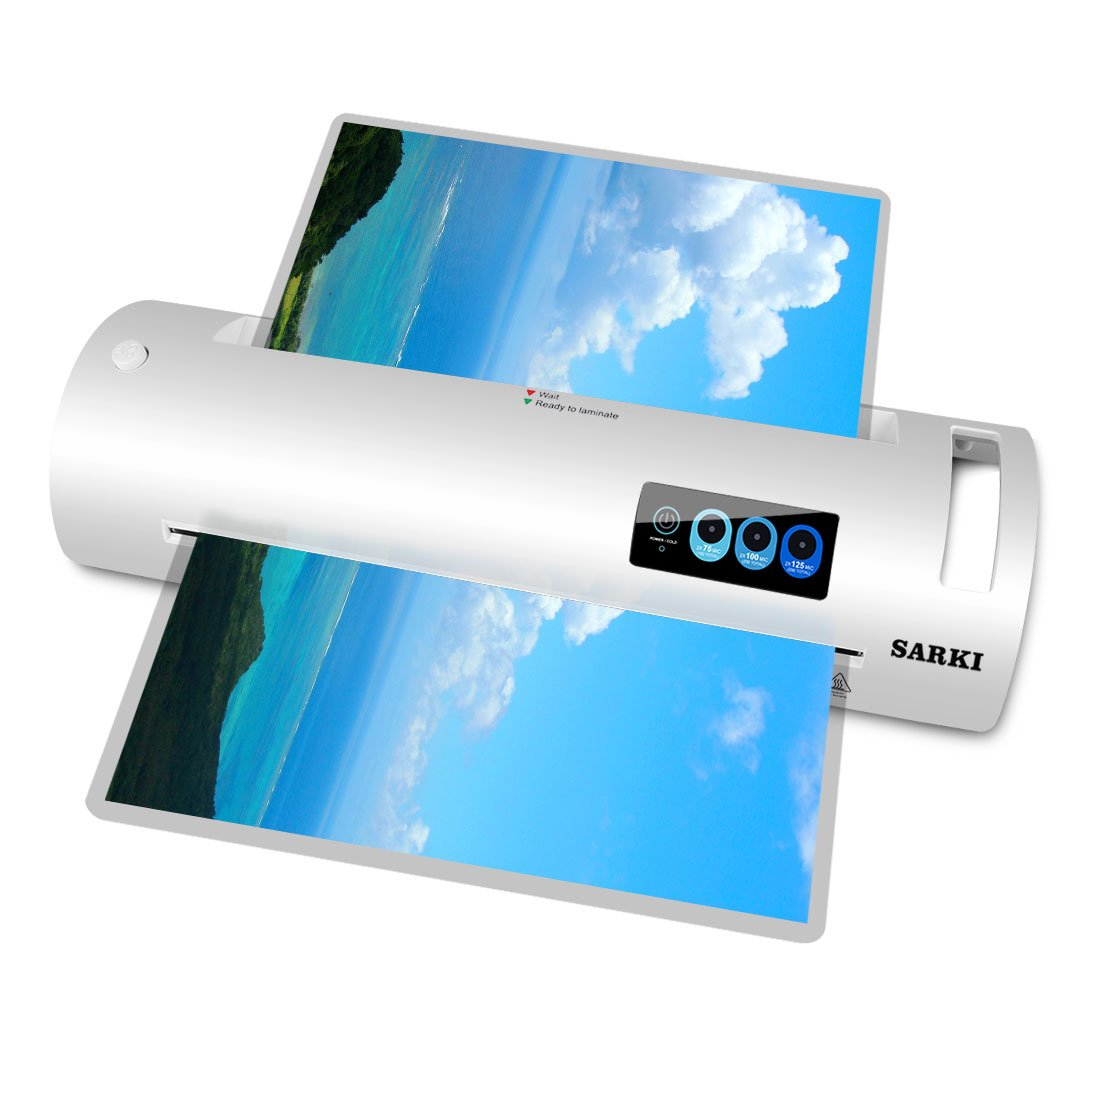 13'' Thermal Laminator, Laminating Machine Supports Both Hot & Cold Laminating, 3-Minute Warm-up, 320mm/min Laminating Speed, Automatic Shut Off Function, Great for Document/Photo/Card (A3-White)